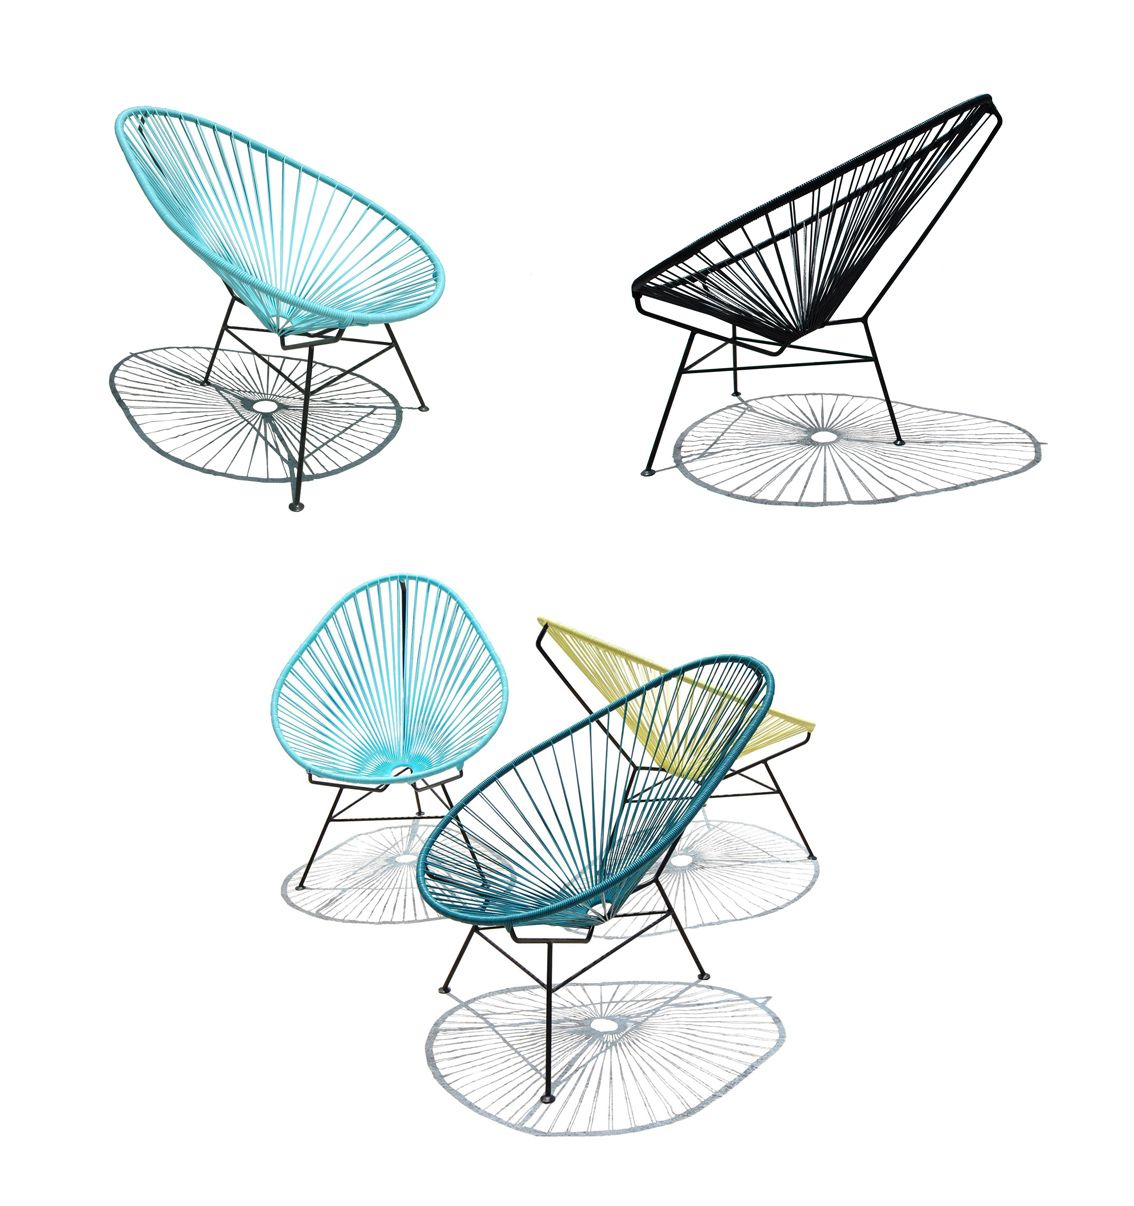 The Acapulco Chair By Carlos Ocho From Ok Design.